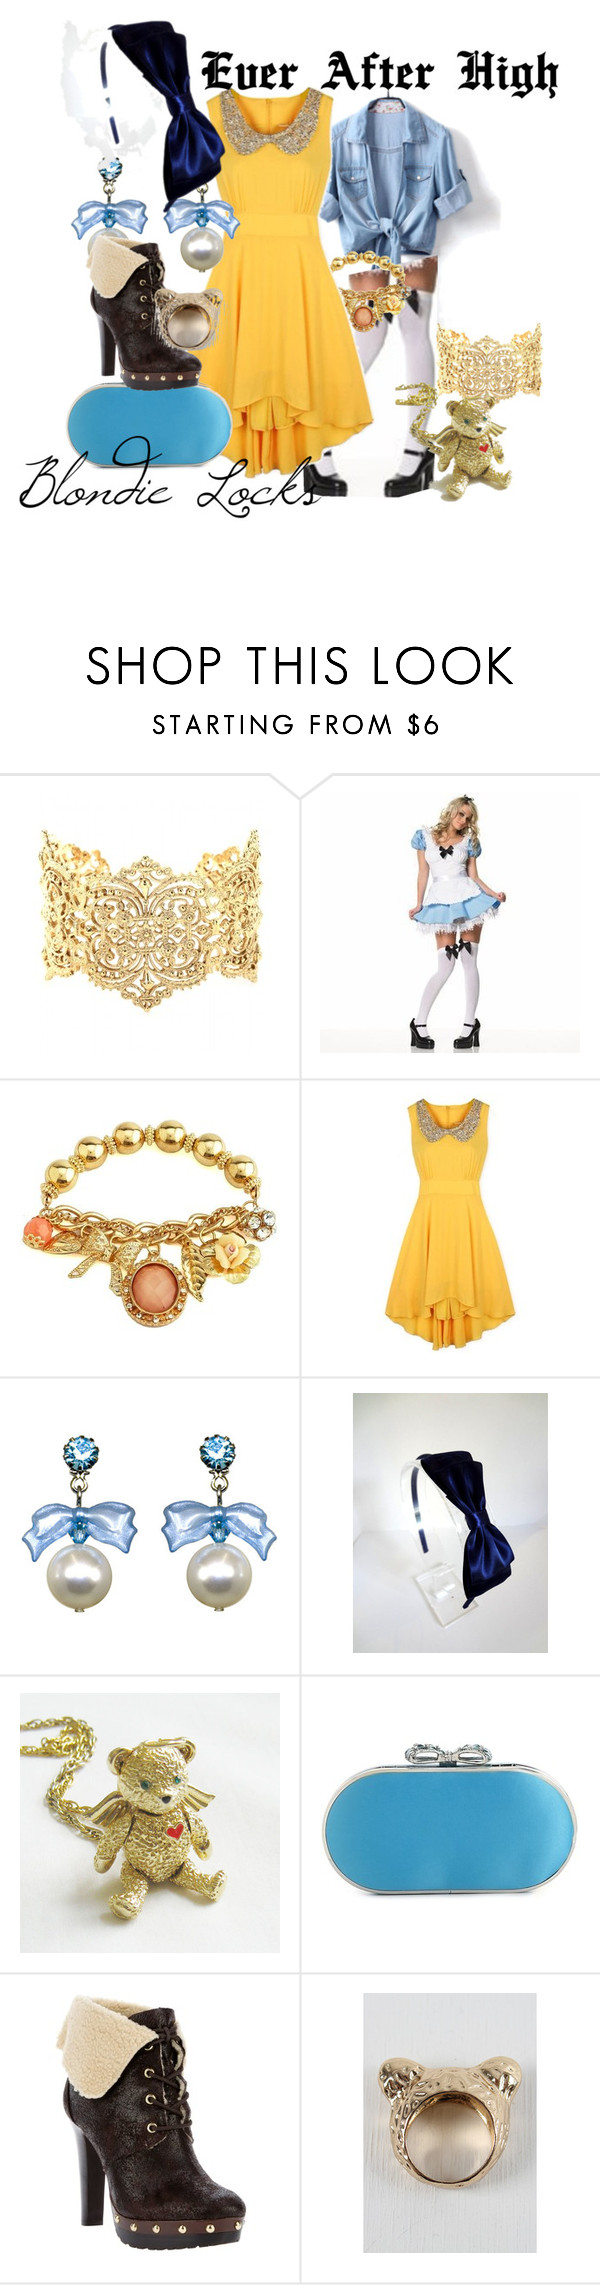 """Ever After High - Blondie Locks"" by sgeorgas ❤ liked on Polyvore featuring IaM by Ileana Makri, Leg Avenue, Charlotte Russe, Tarina Tarantino, Lulu Townsend and MICHAEL Michael Kors"